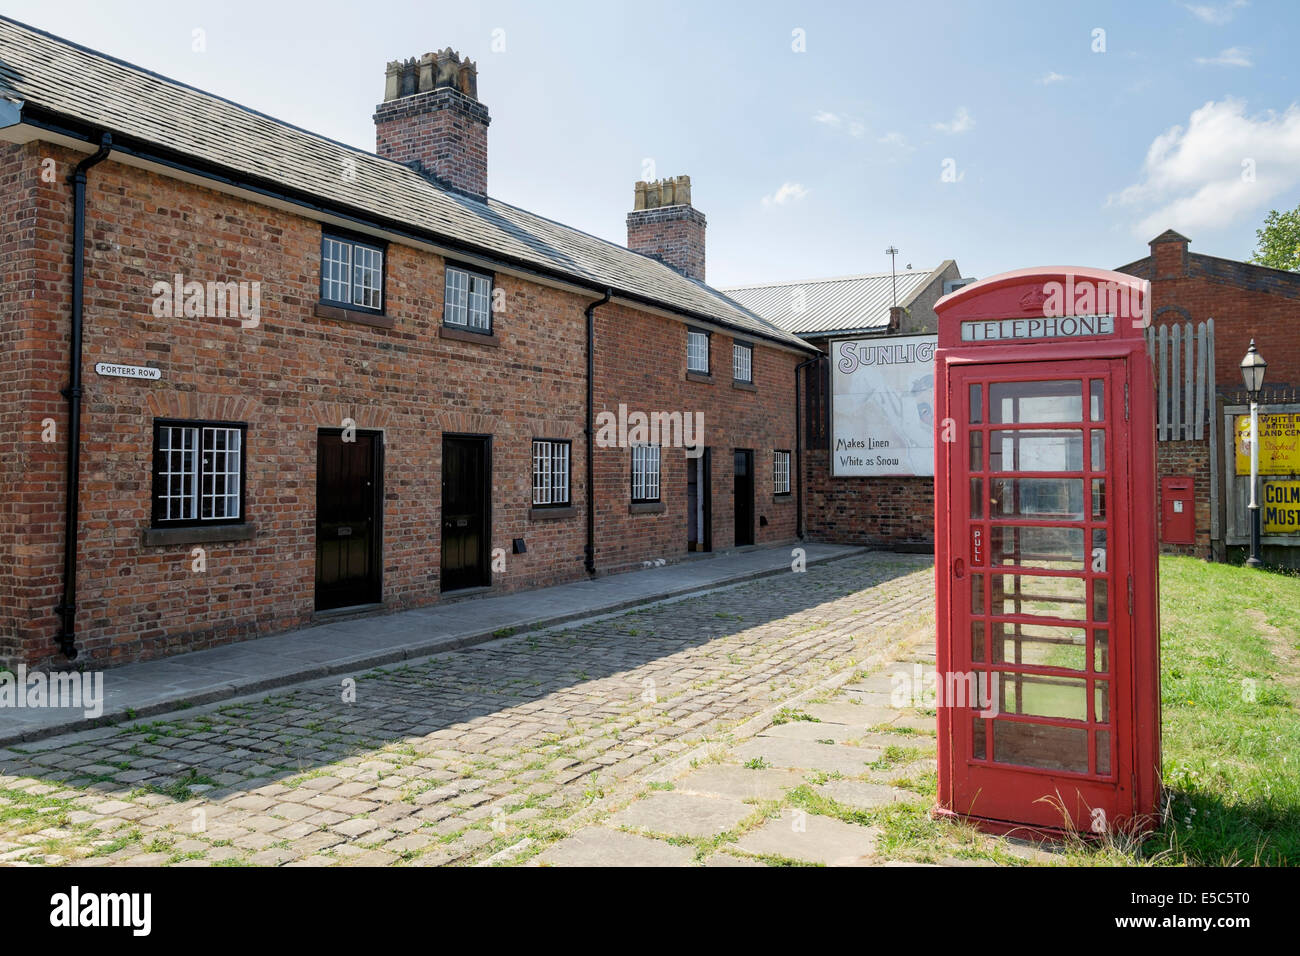 Red phone box in Porters Row of historic cottages housing for dock workers at National Waterways Museum Ellesmere - Stock Image